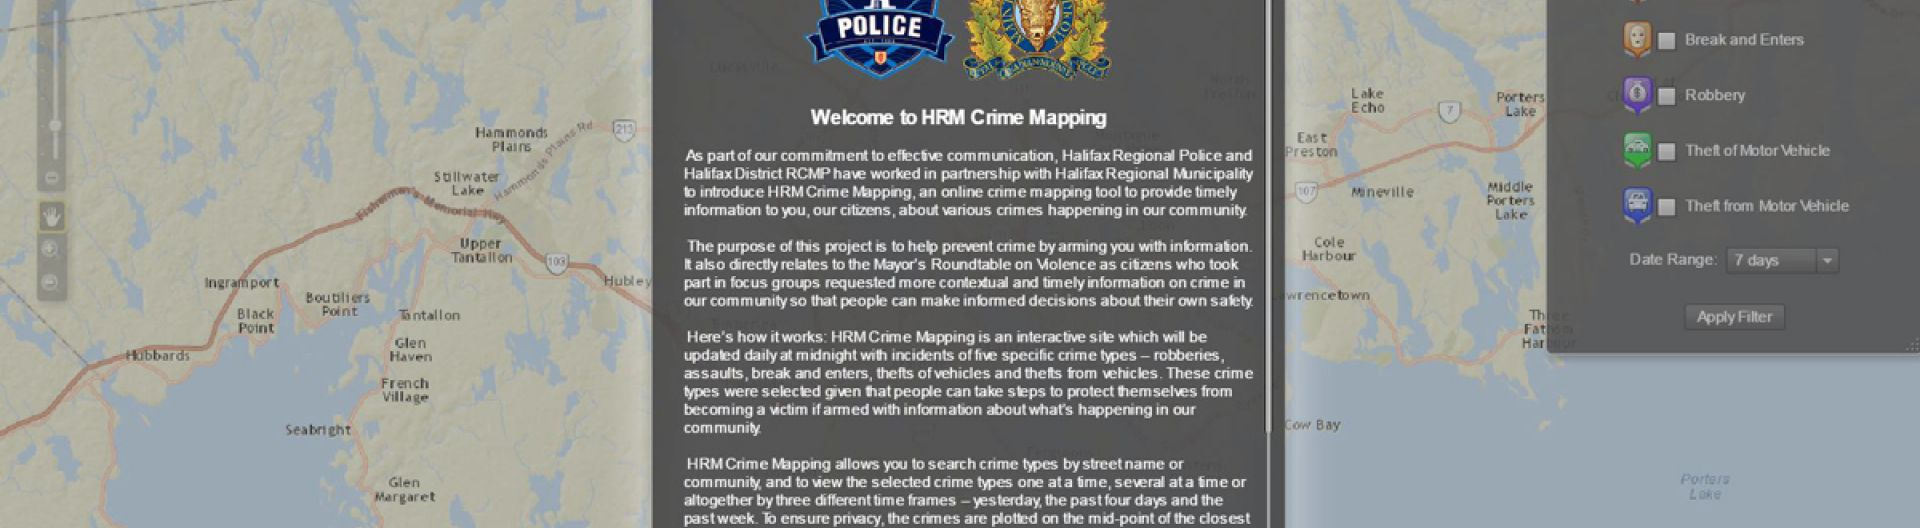 Crime Mapping | Halifax